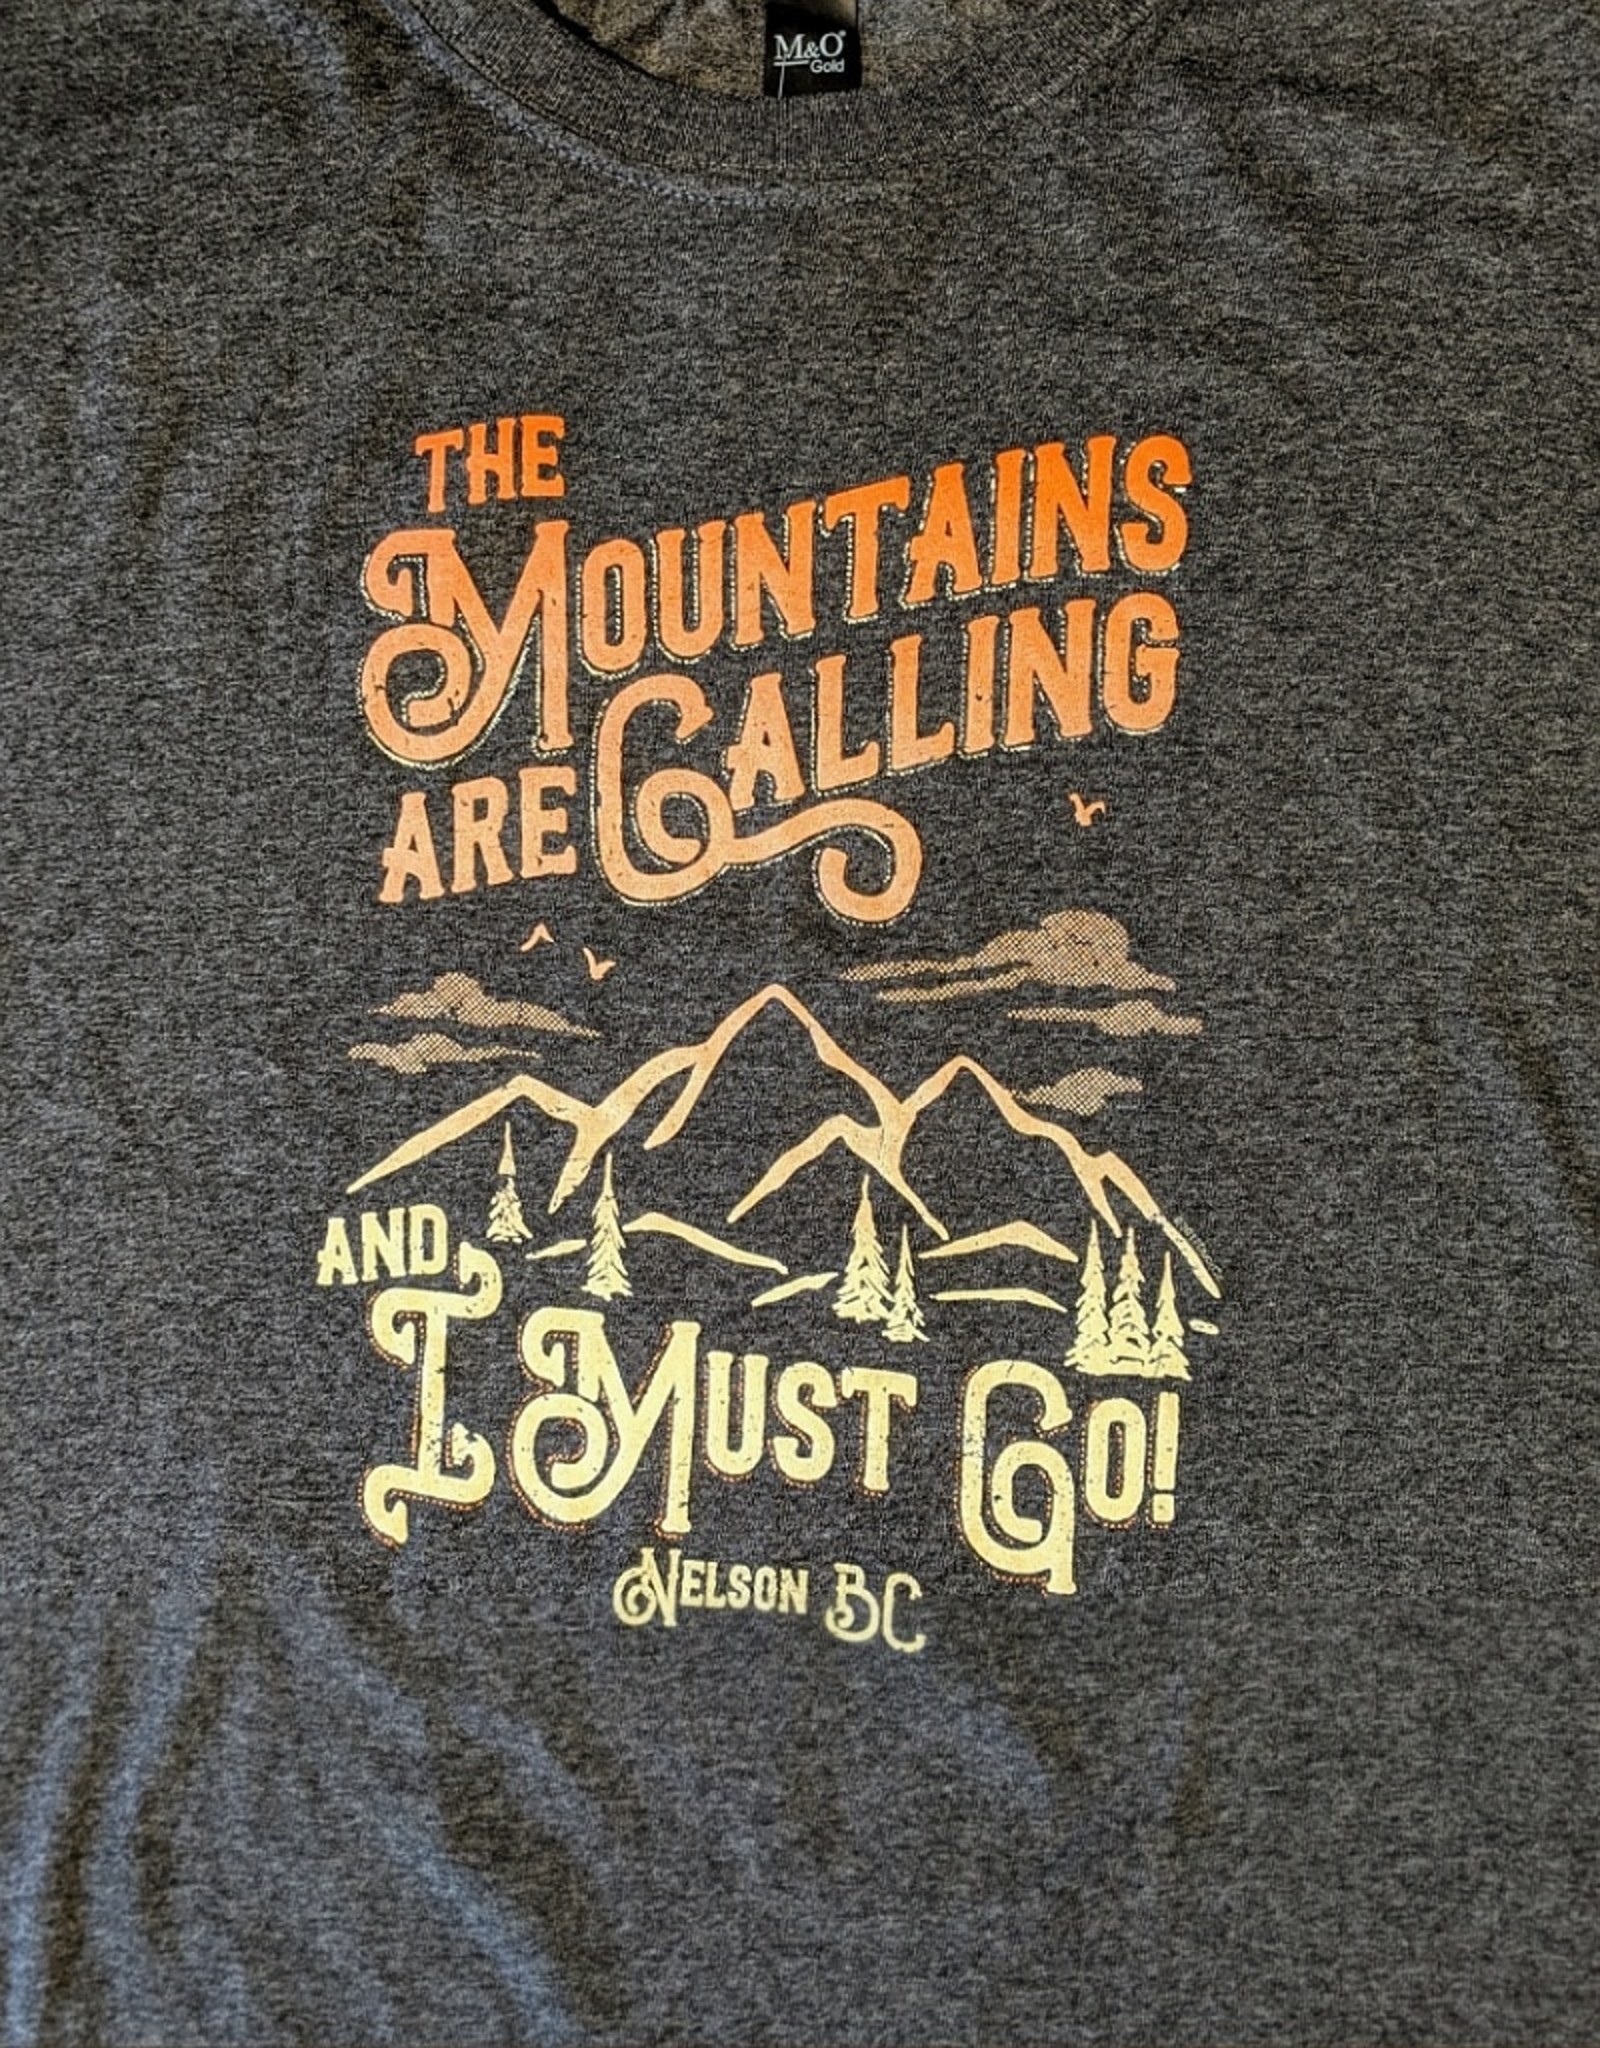 Nelson Souvenir Tee - Mountains Are Calling